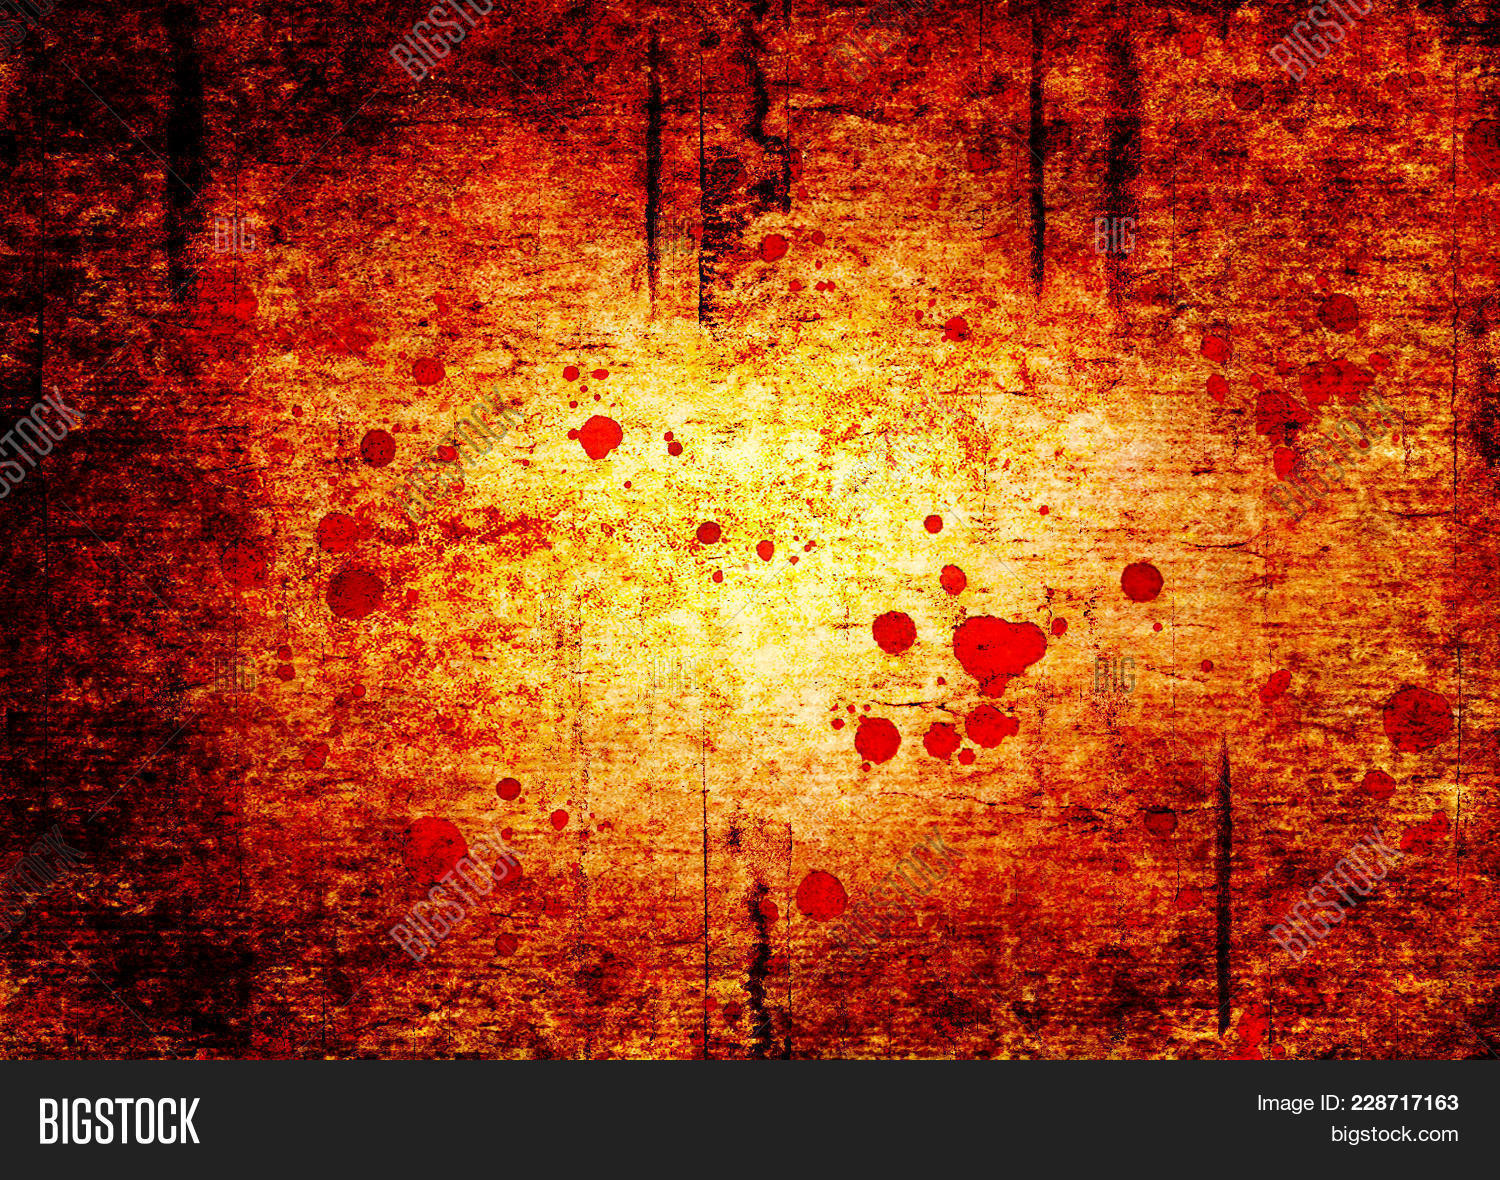 Bloody Blood Red Image Photo Free Trial Bigstock Download for free this blood stain texture. bloody blood red image photo free